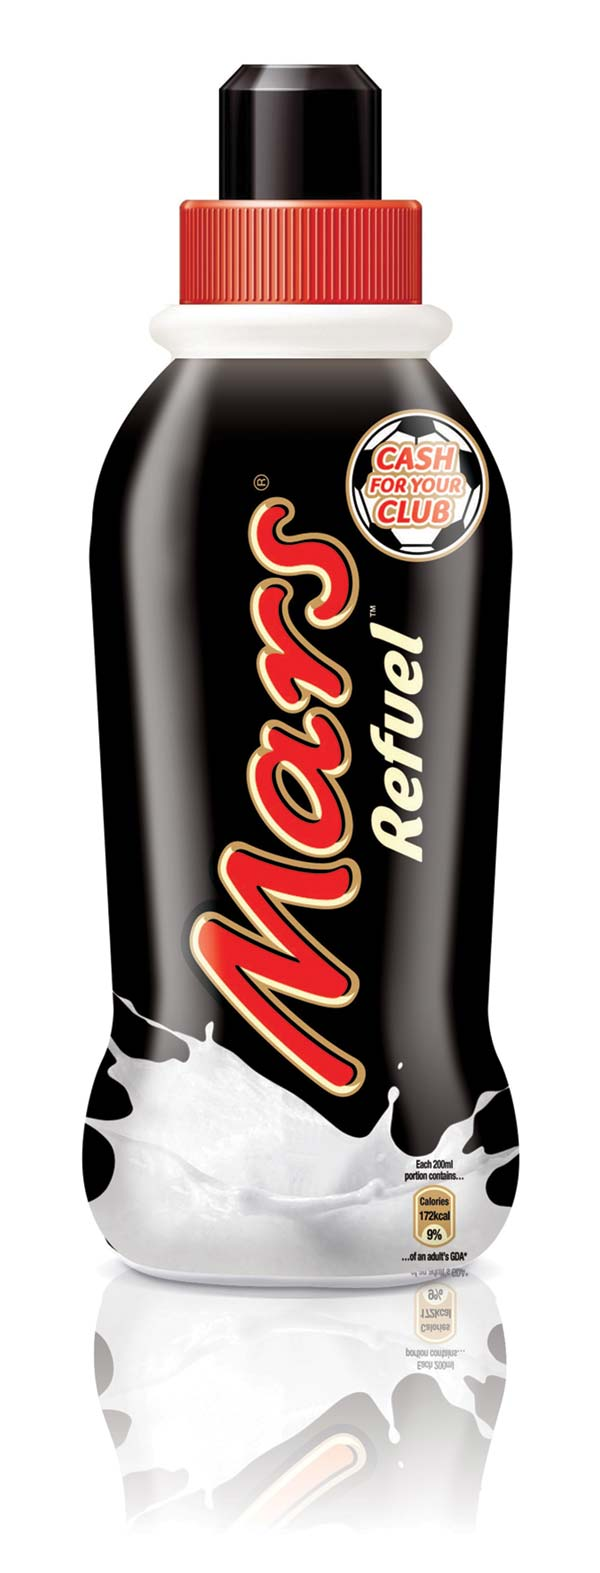 Mars reveals new packs for refuel as popular sports